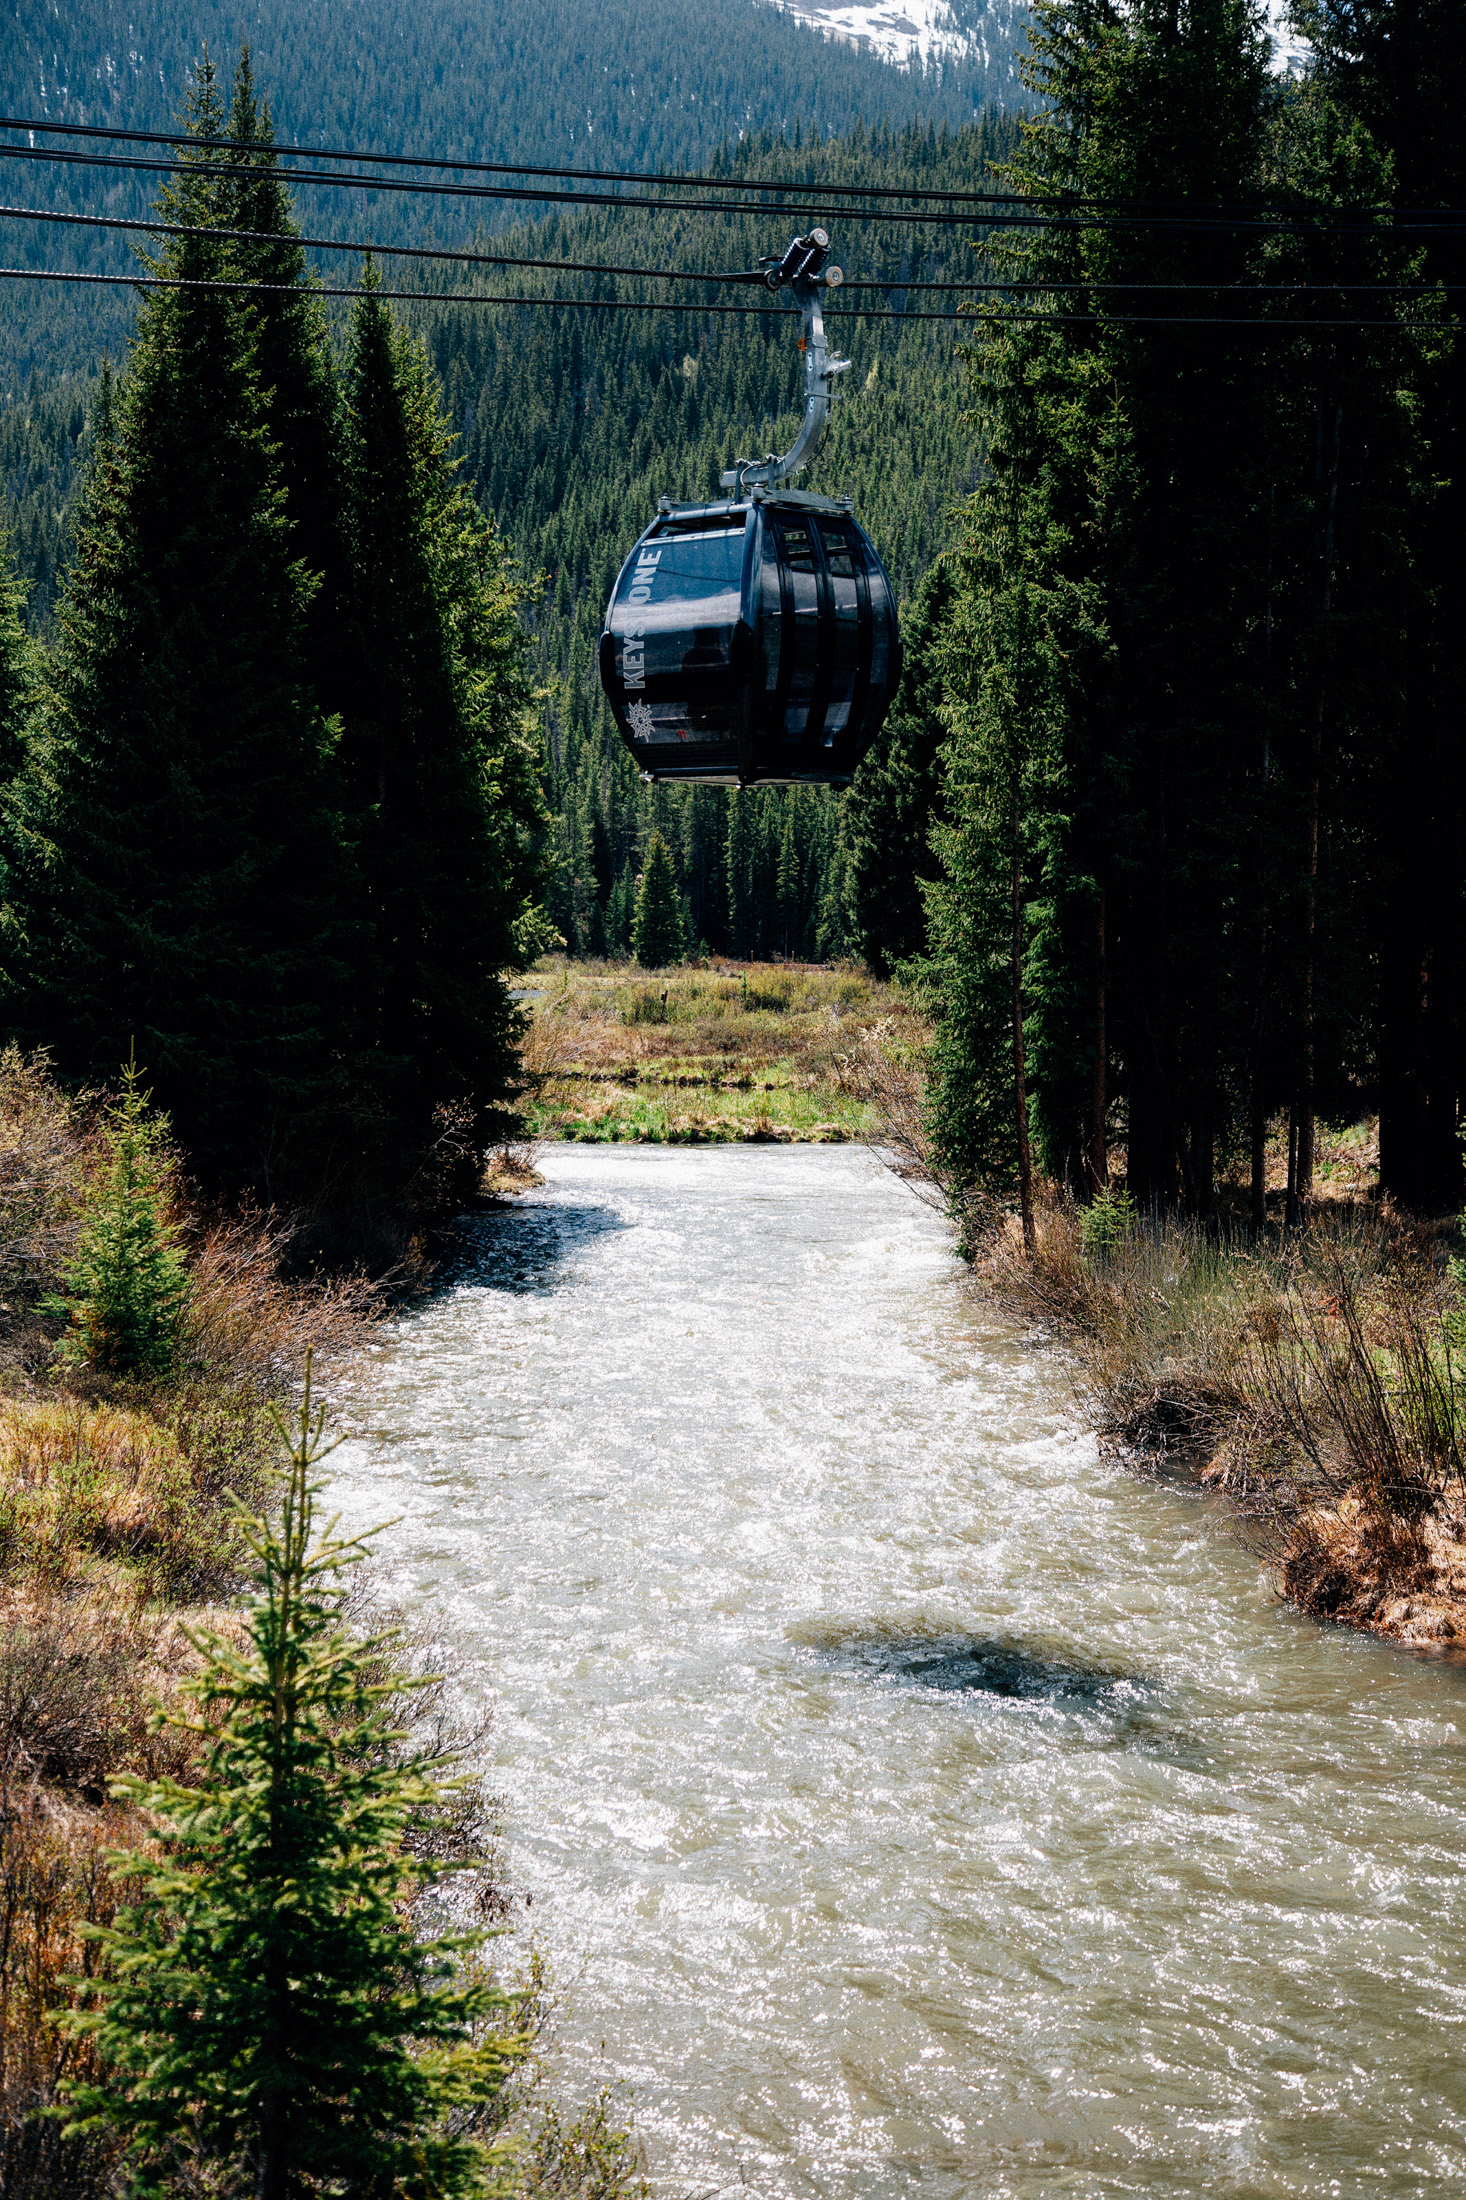 Gondola over the creek at Center Village.